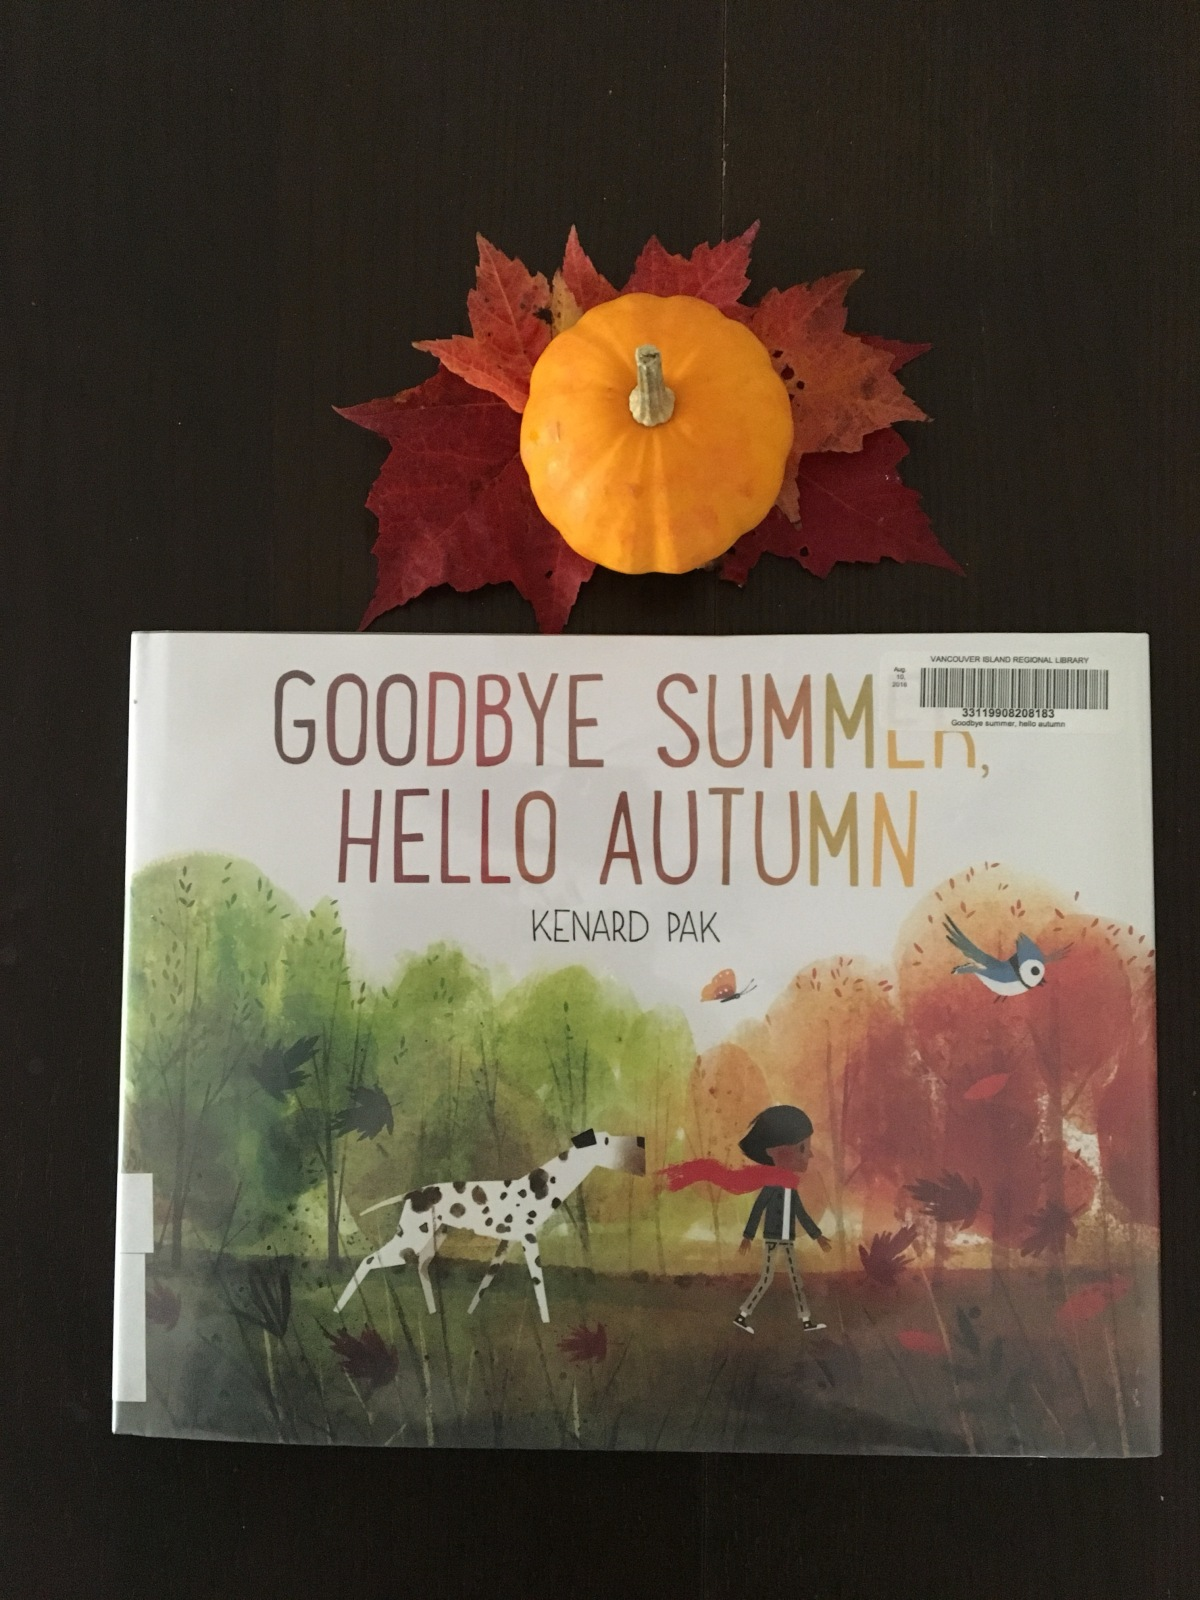 Sunday Book Club: Autumn favourites